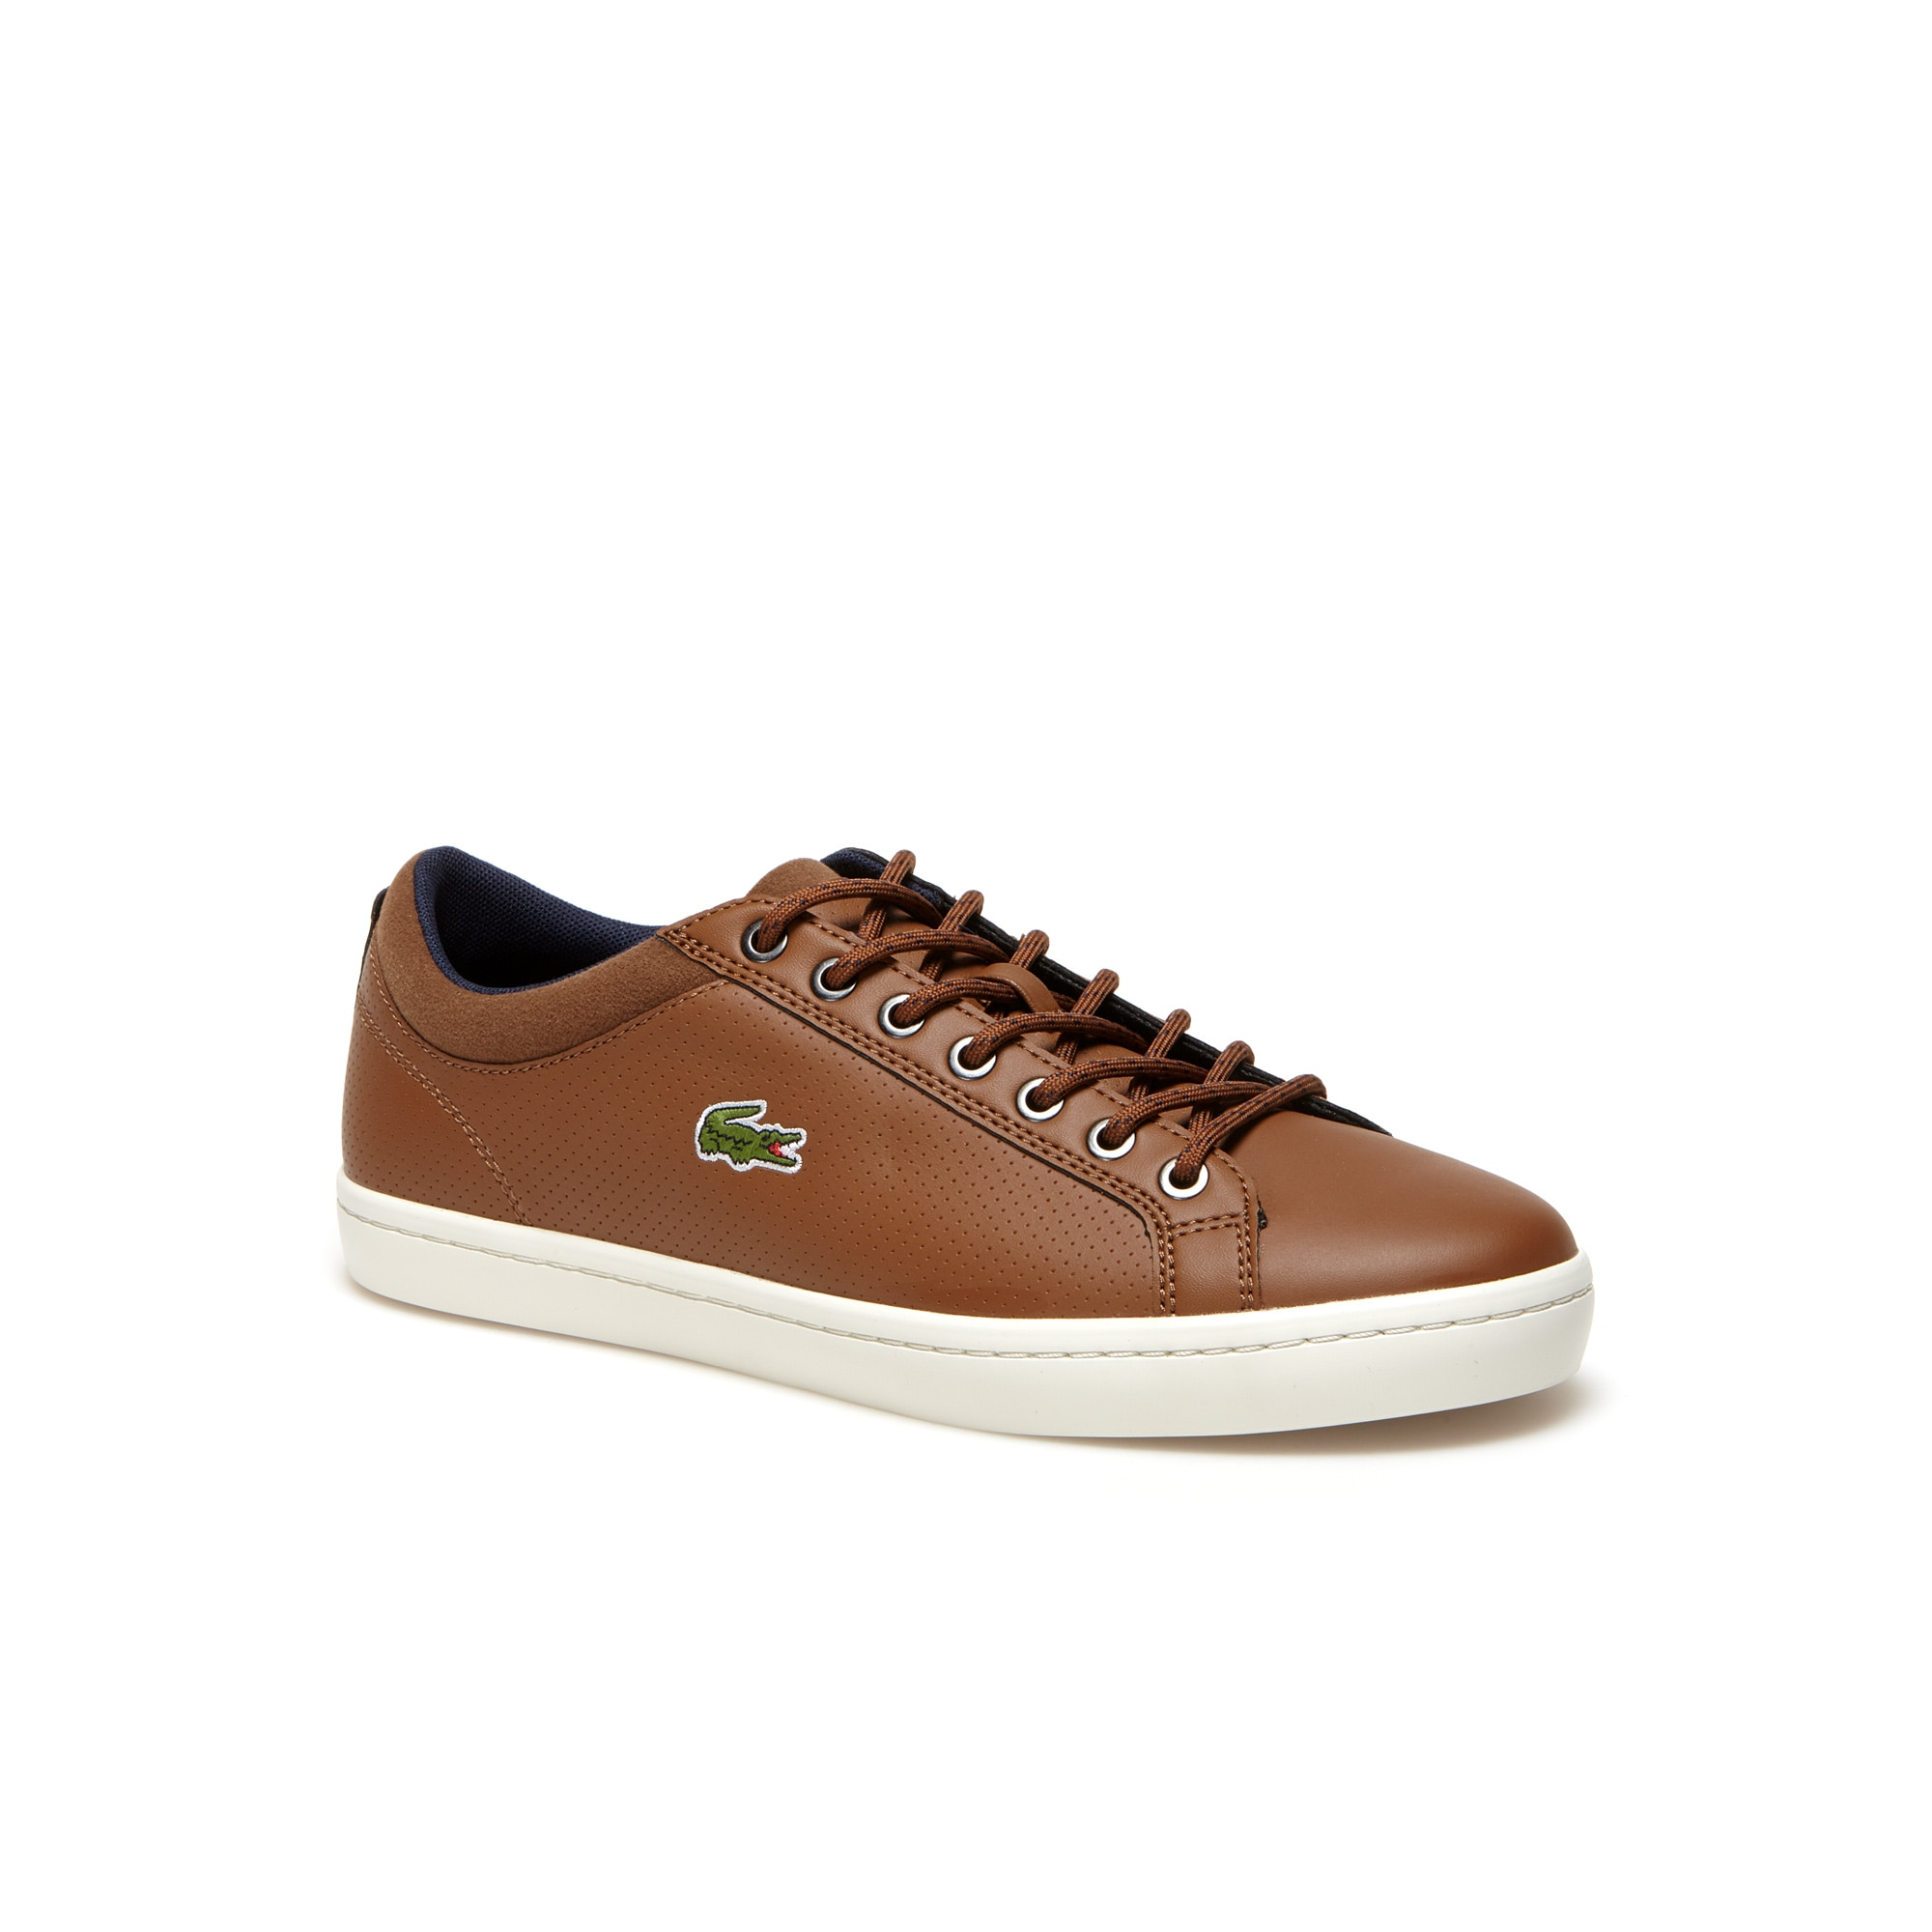 Men's Straightset SP Punched Leather Trainers